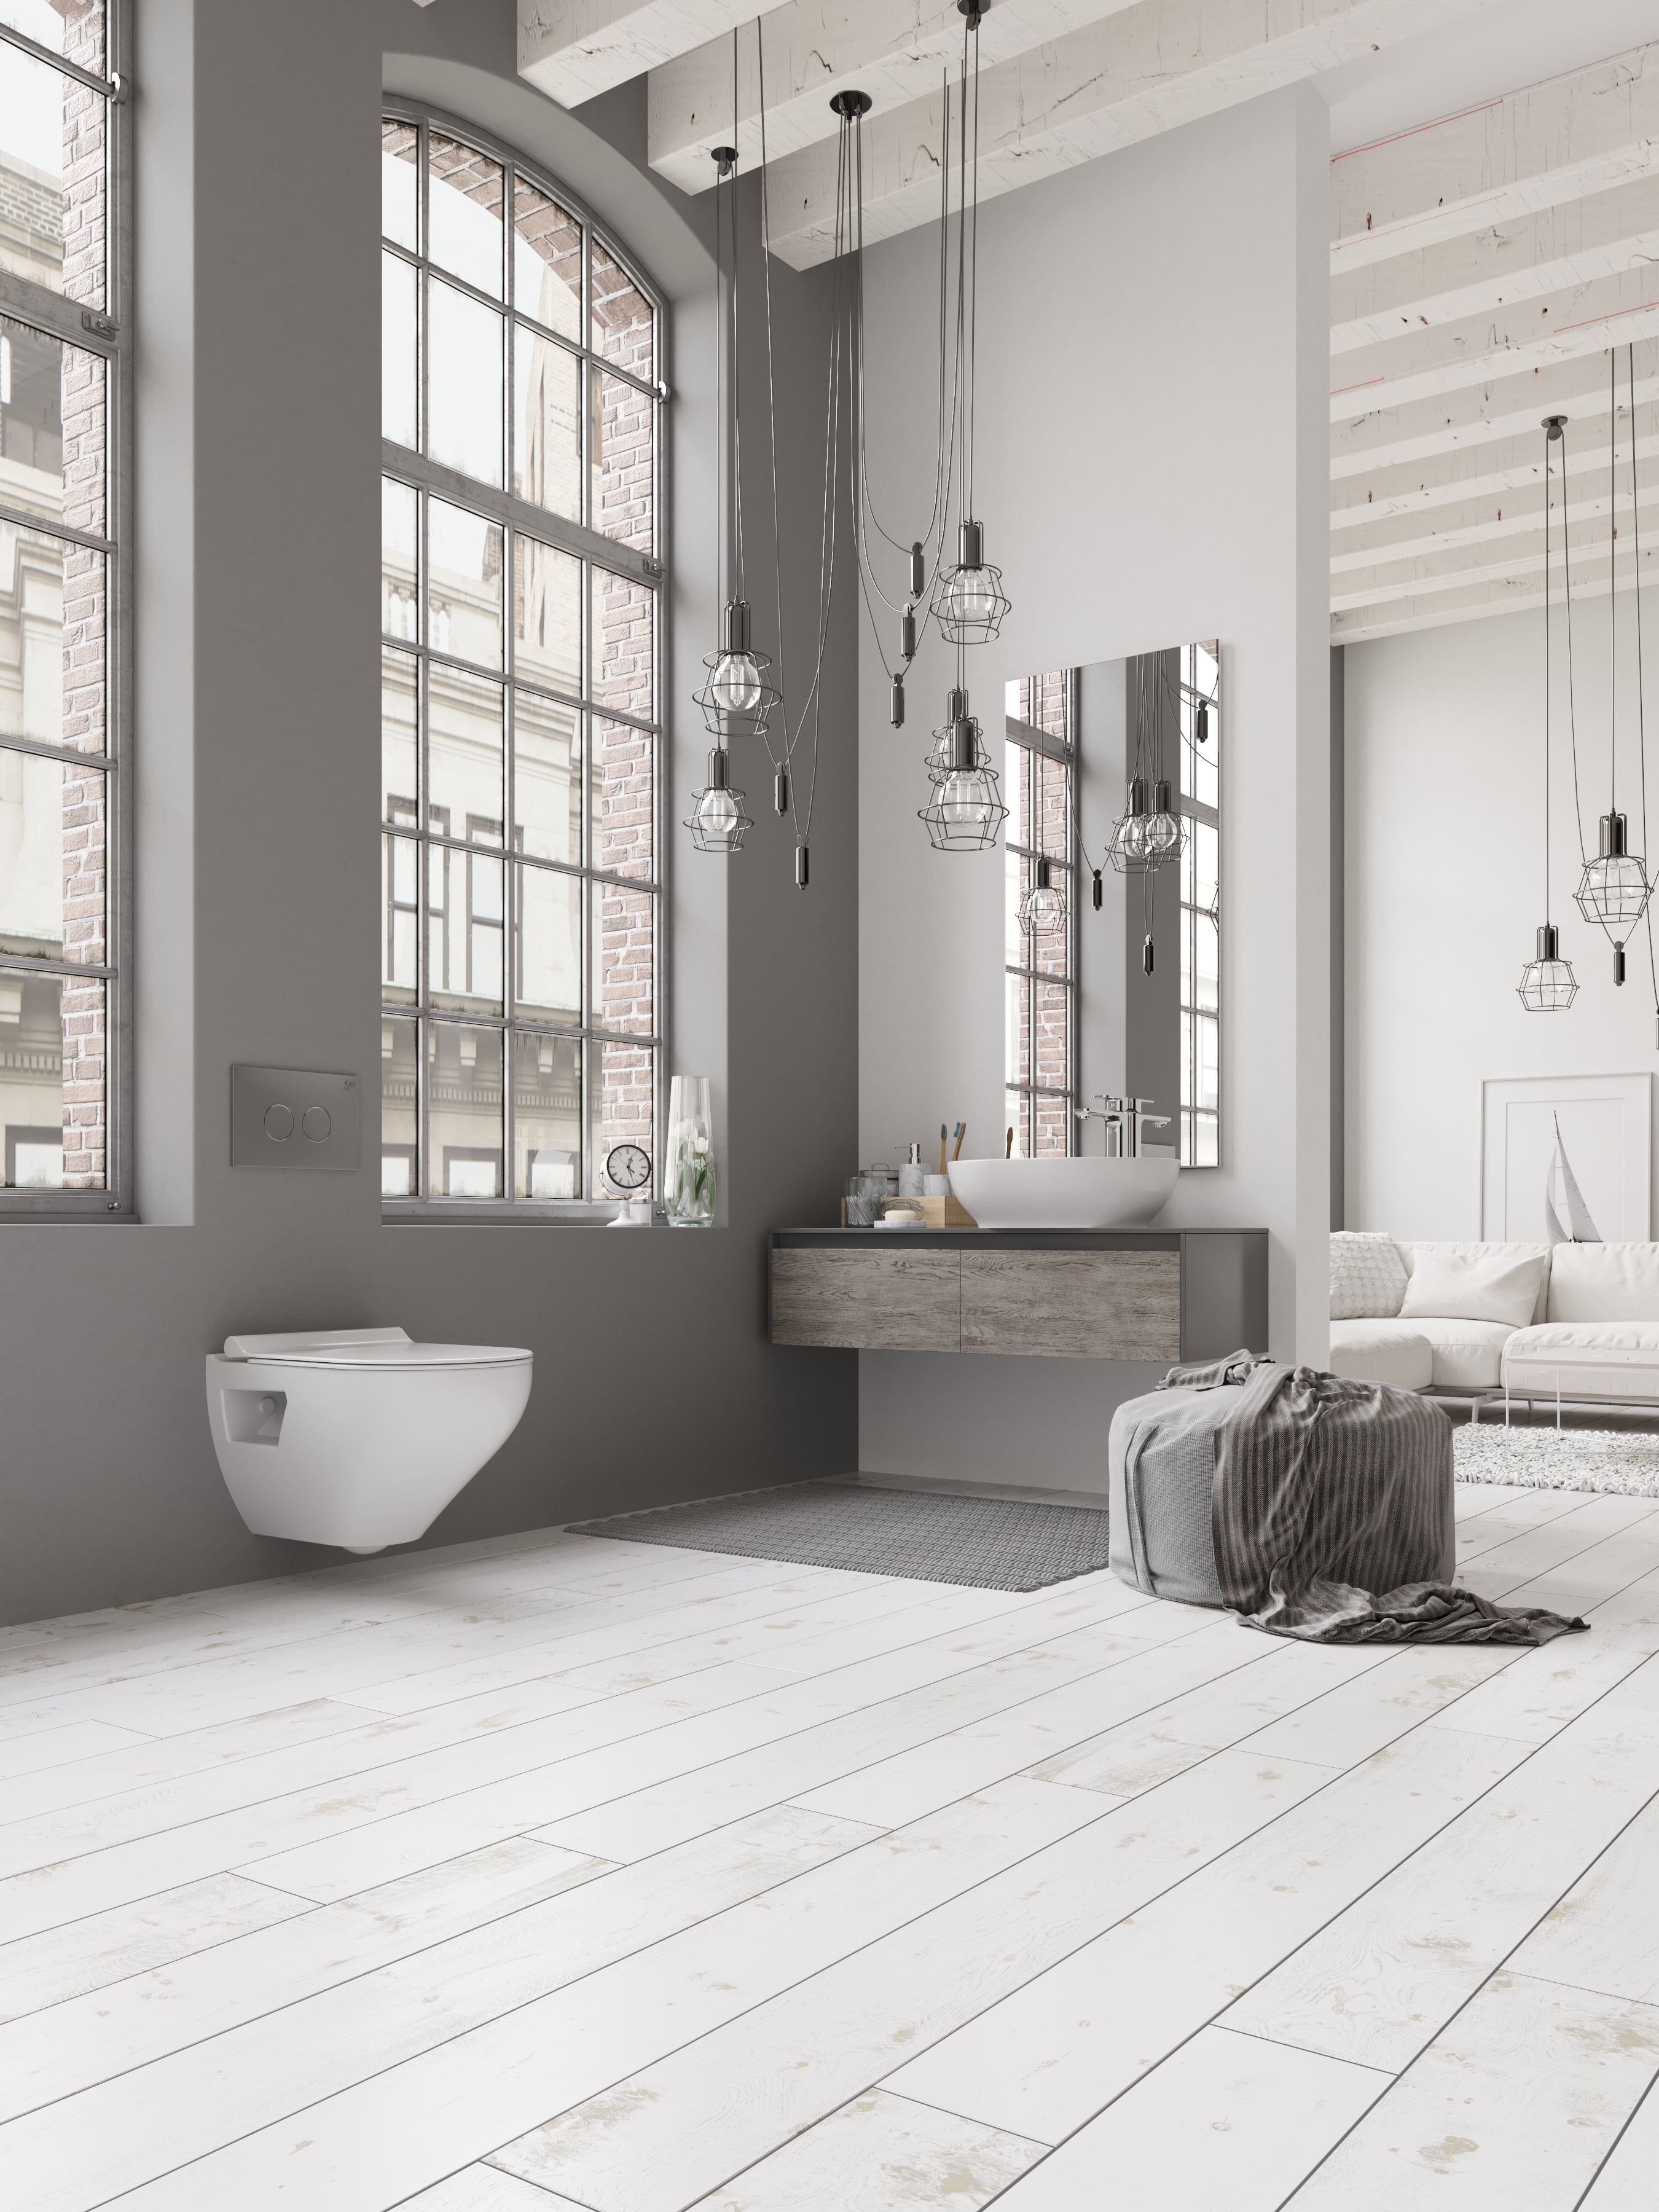 Trend 2018 And 2018 Bathroom Layouts 241×300.jpg